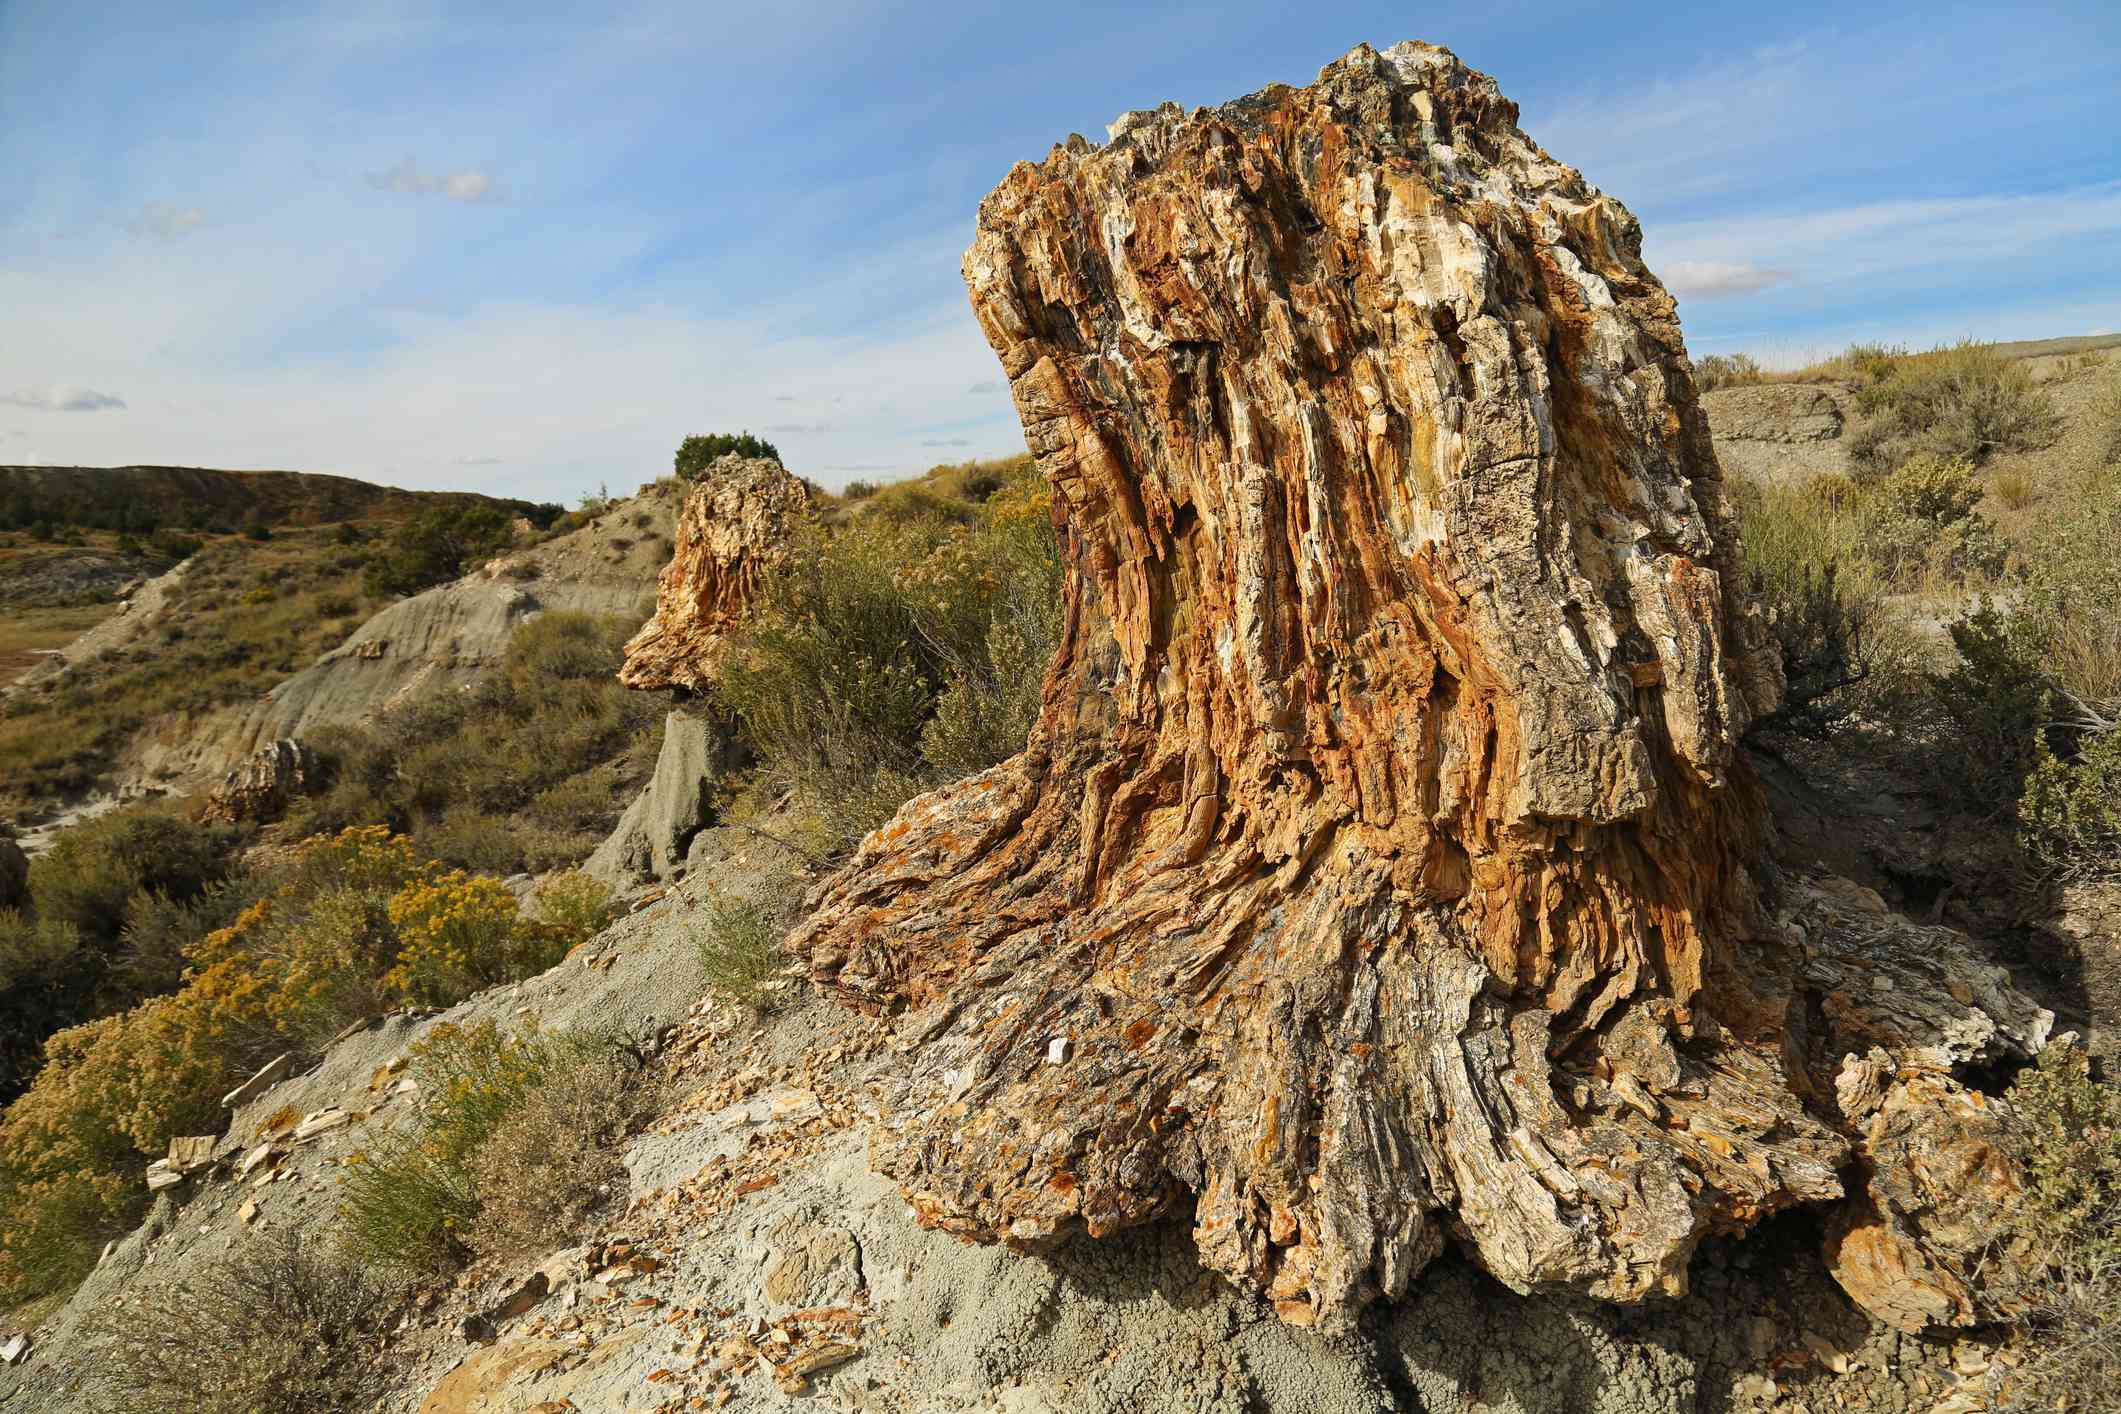 Petrified Forest of the Theodore Roosevelt National Park